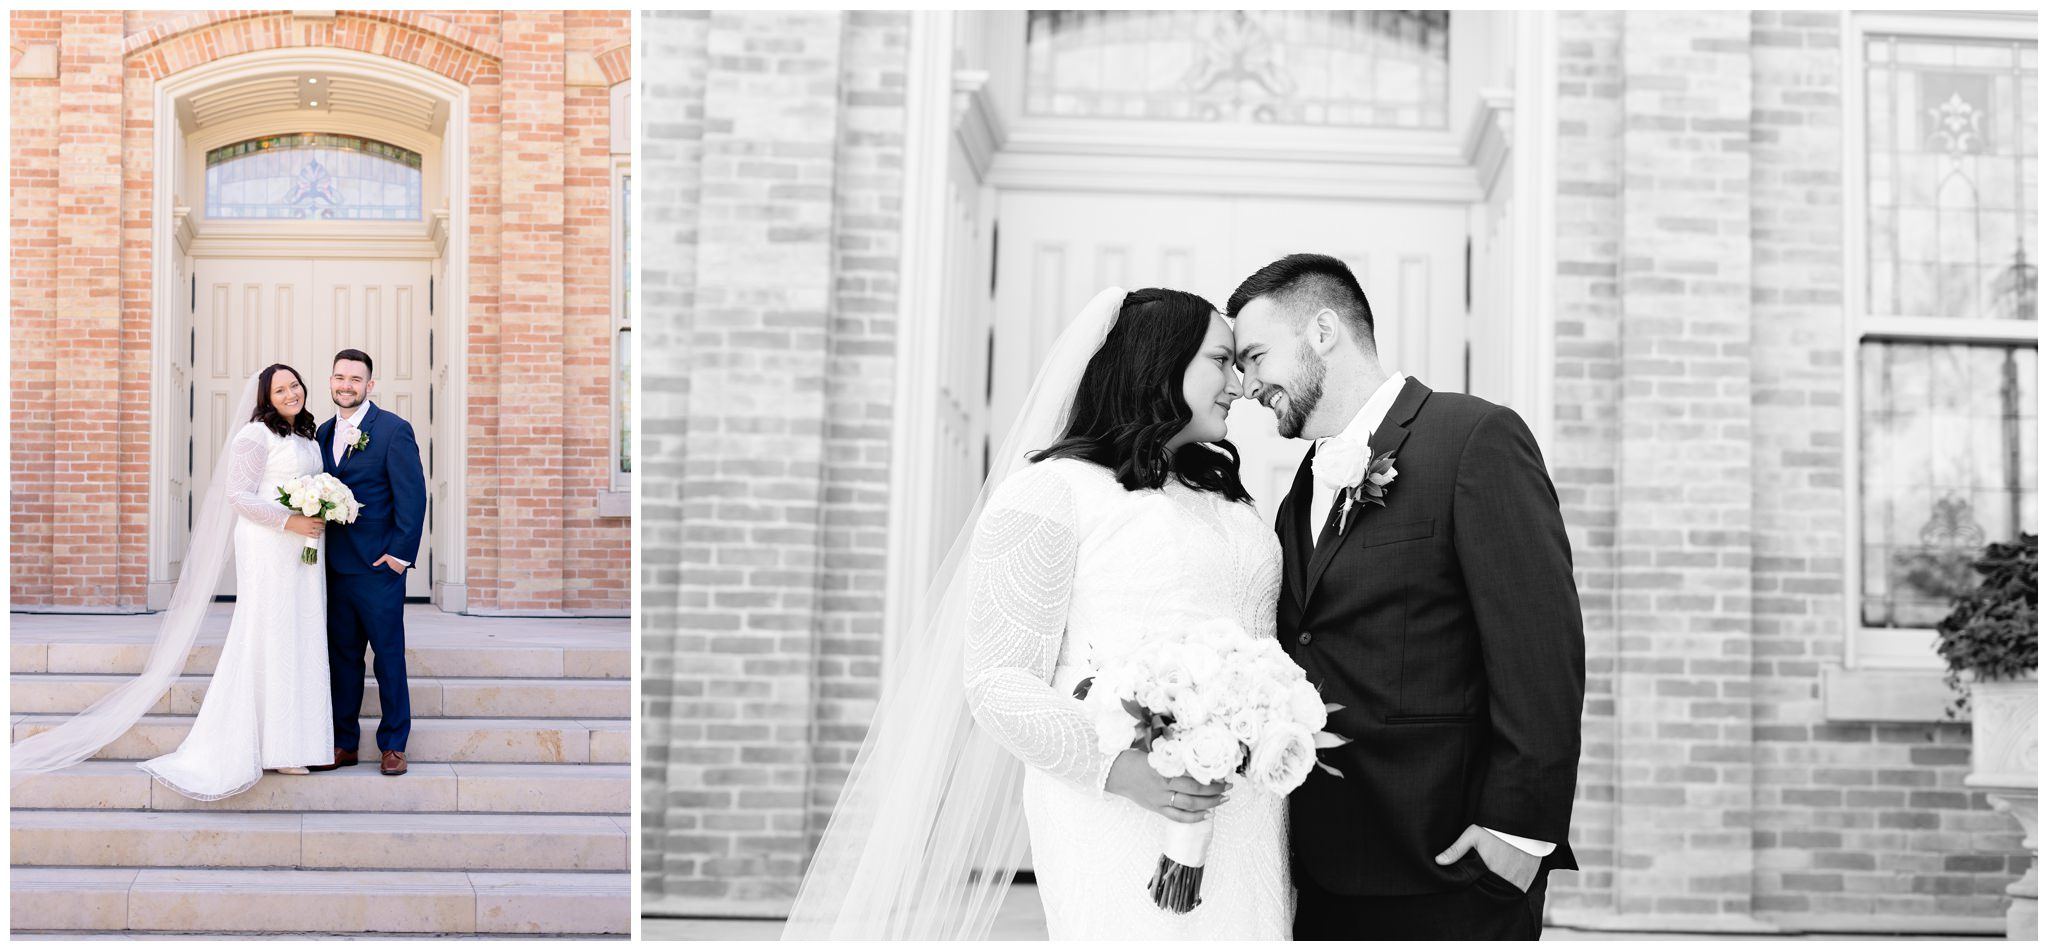 Utah Valley Bride and Groom at the Provo City Center Temple